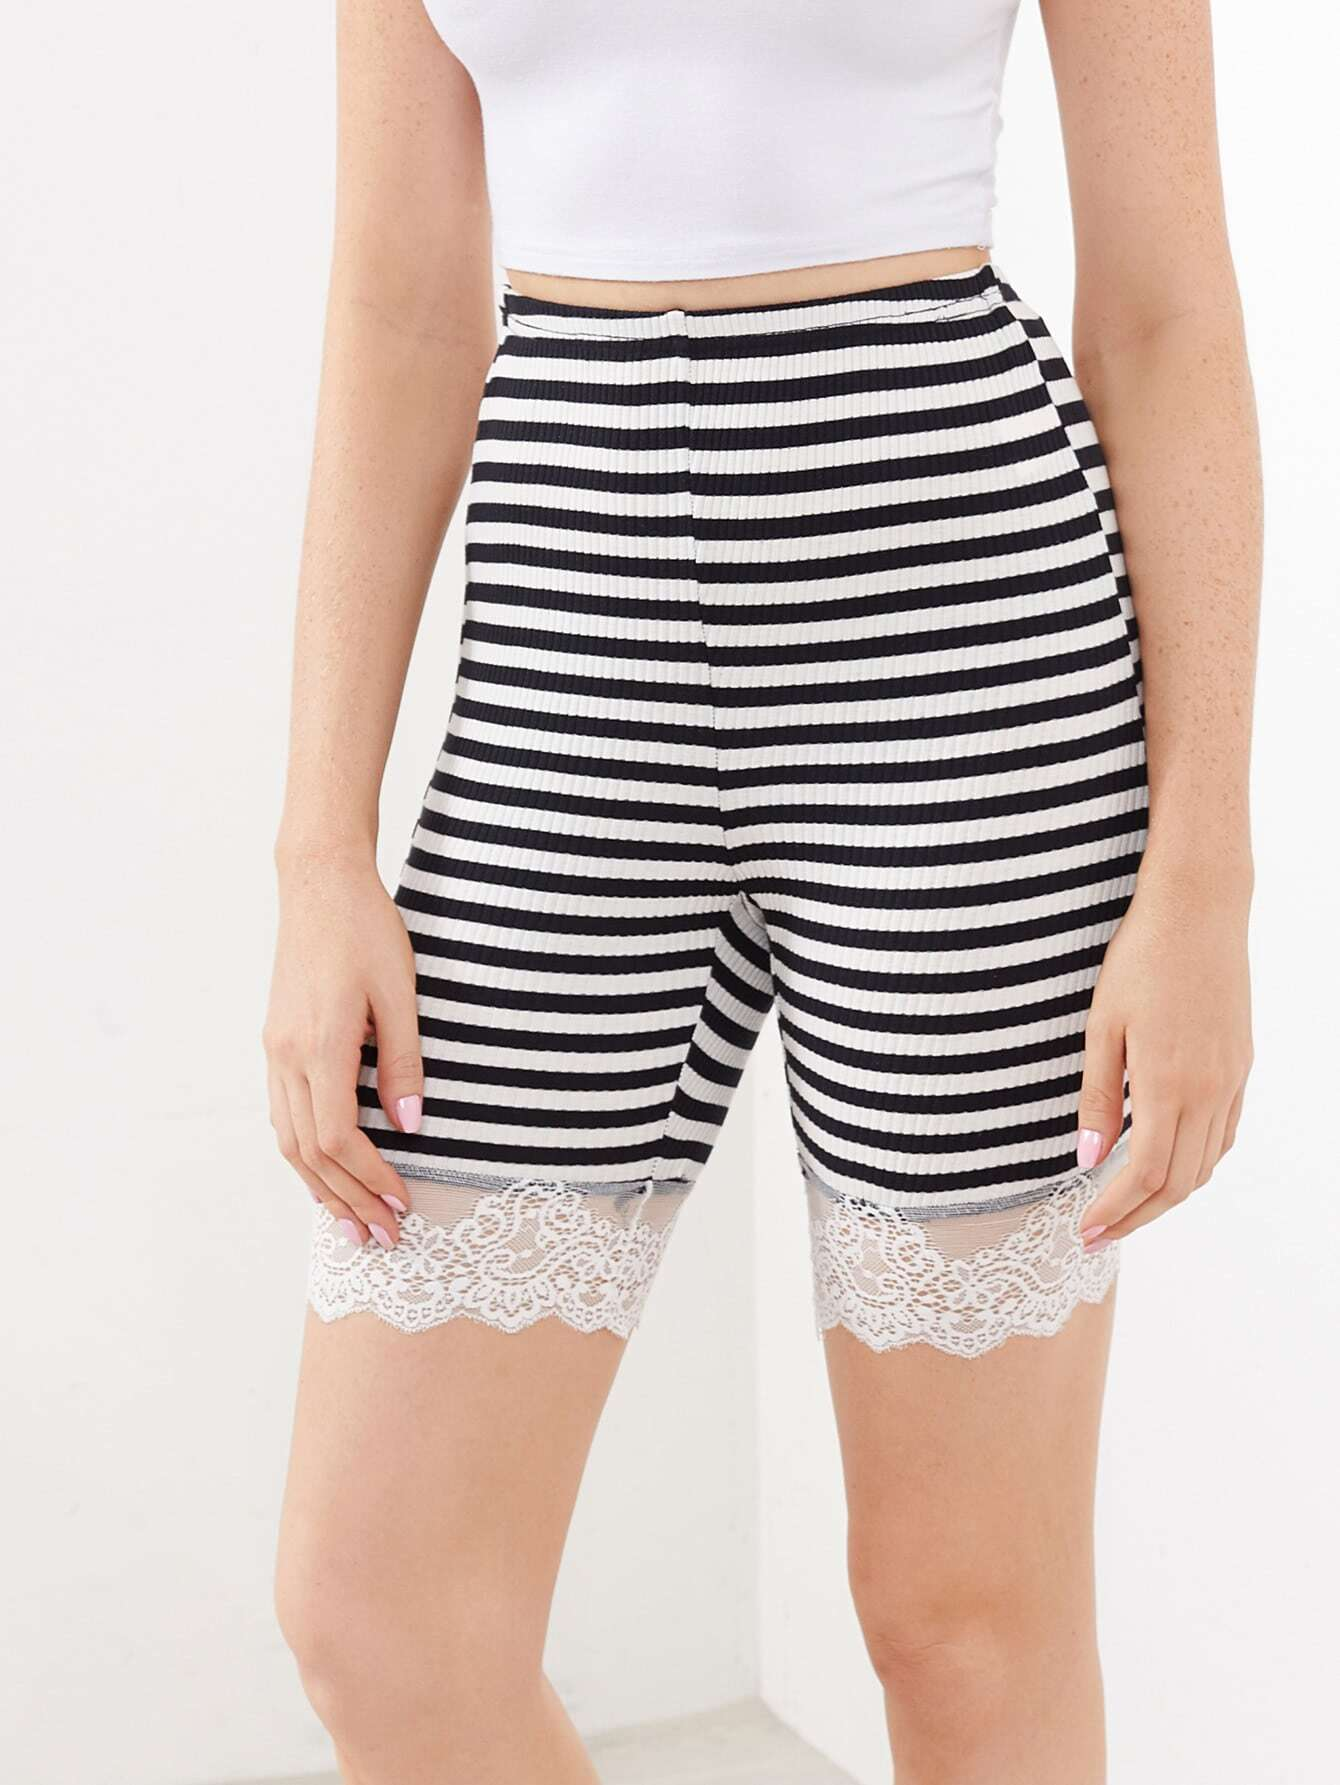 Lace Trim Rib Knit Striped Legging Shorts